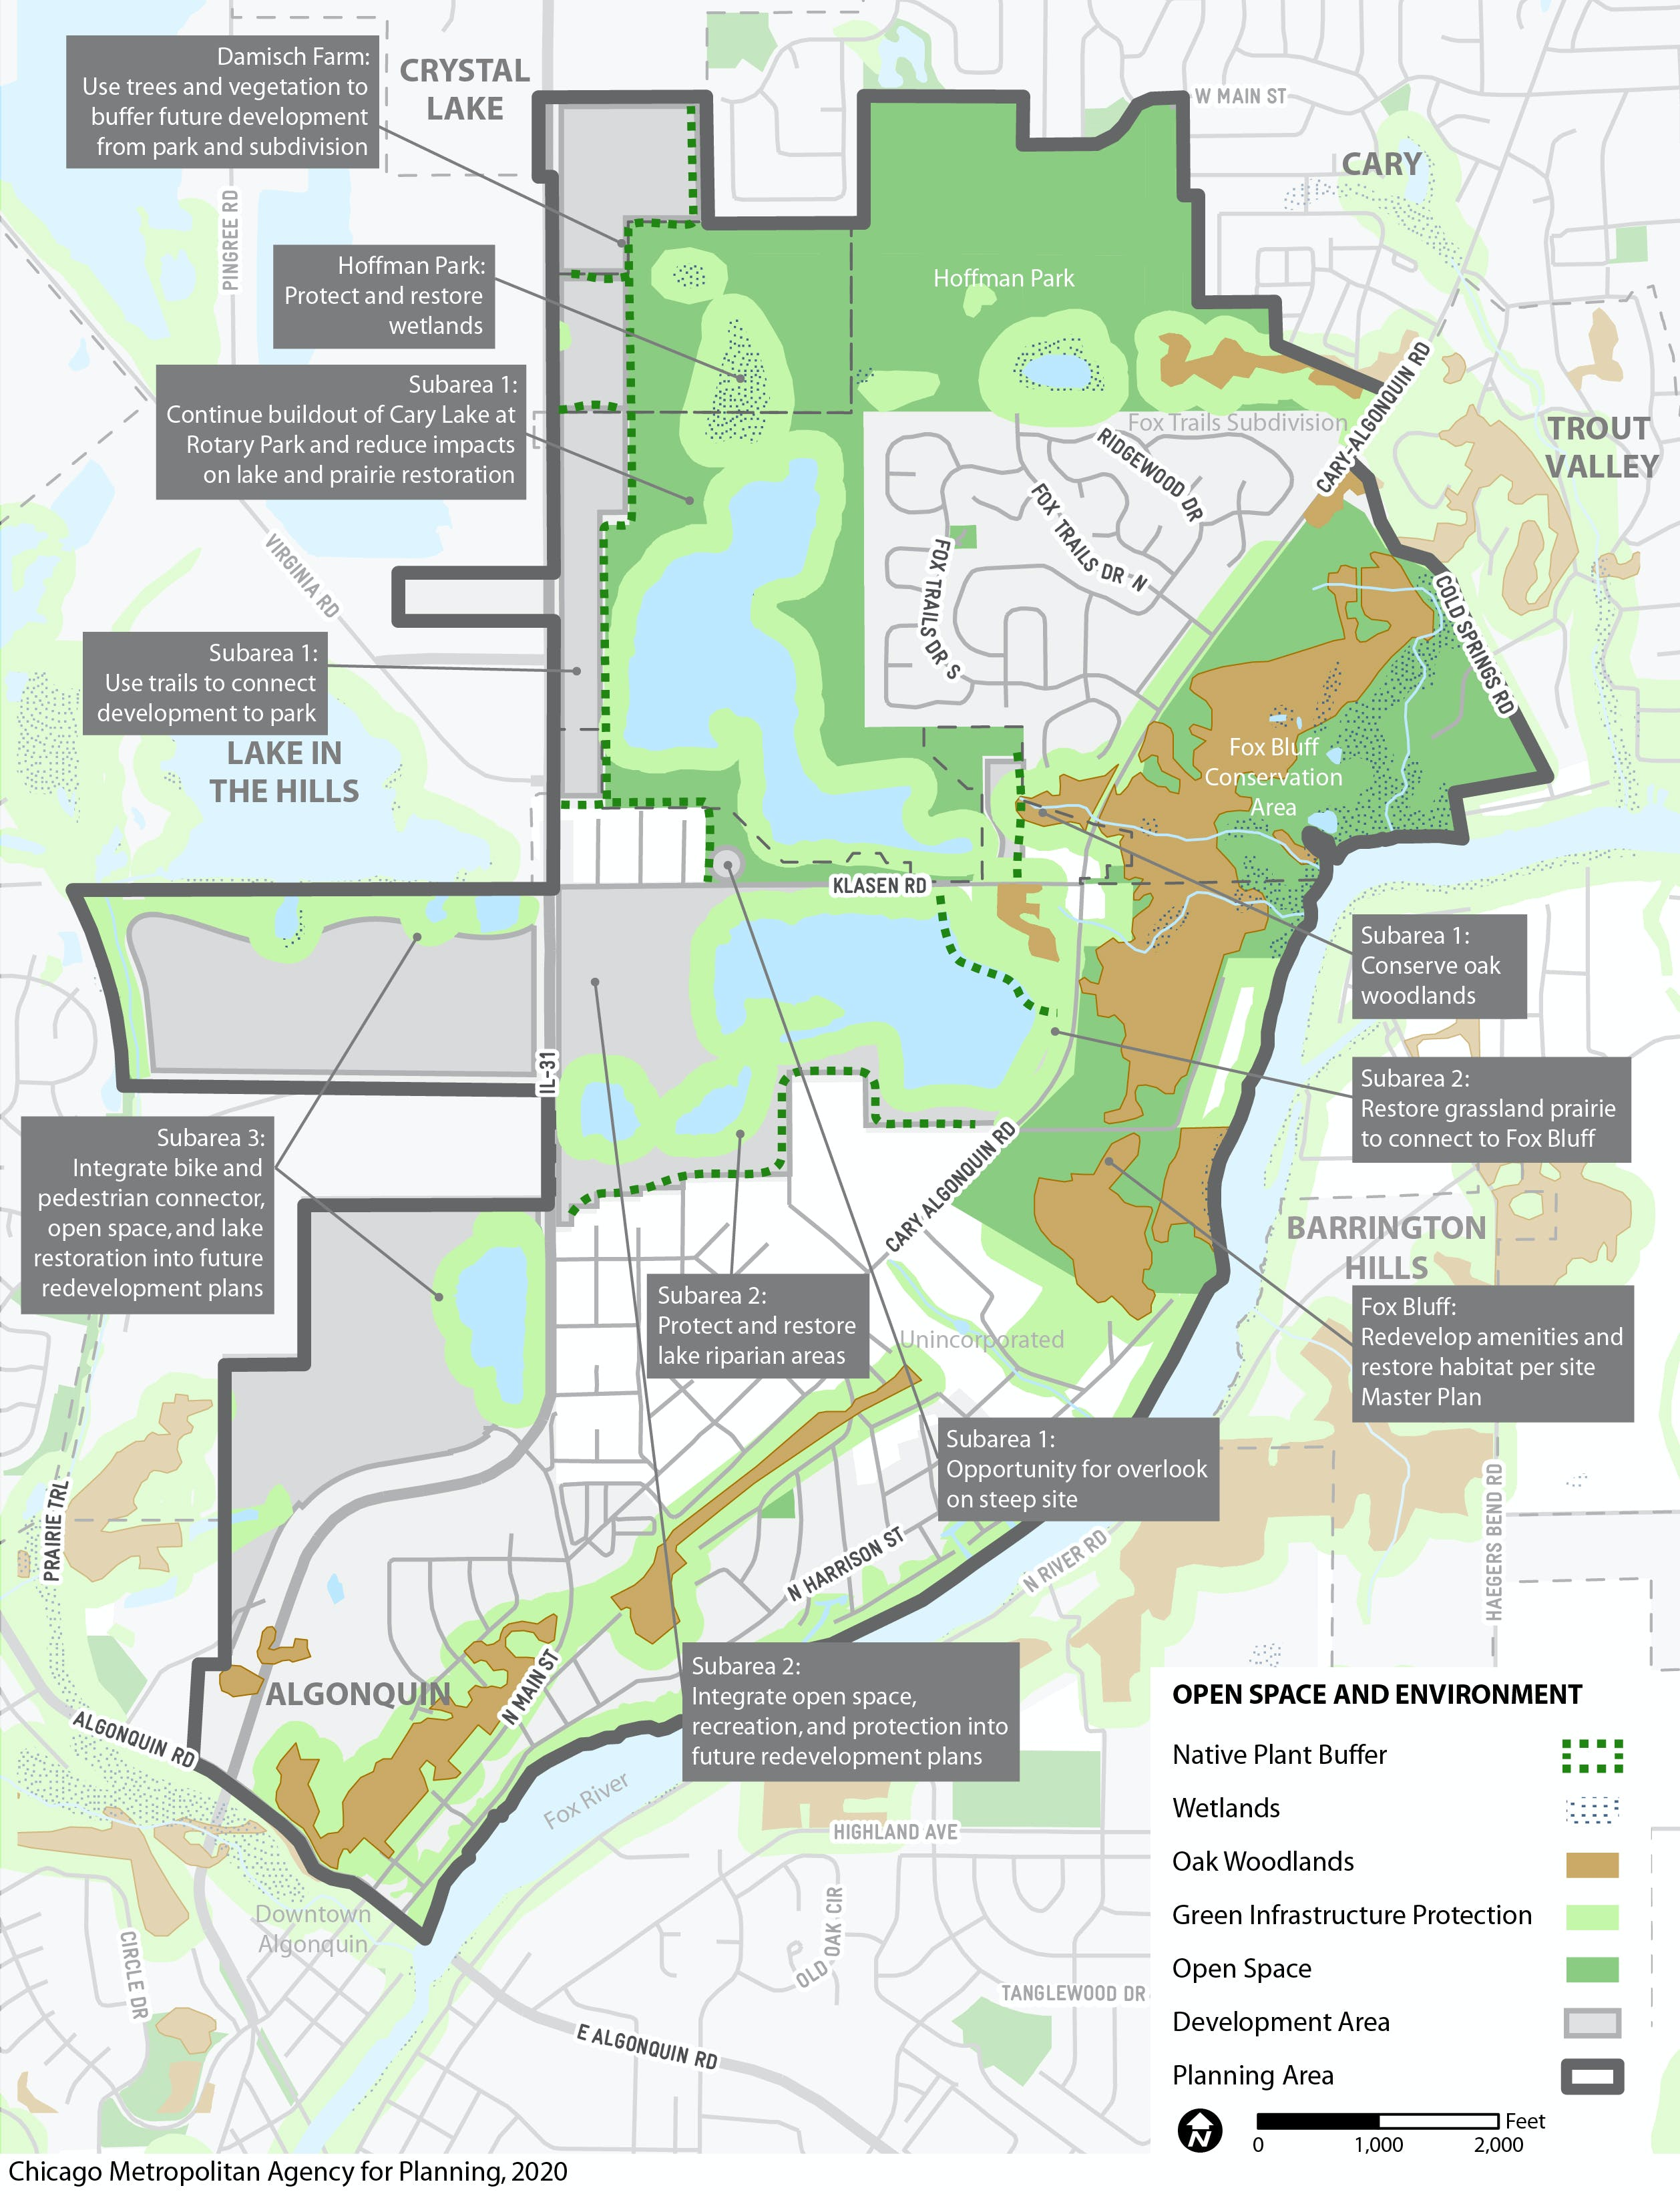 Open Space and Environment plan